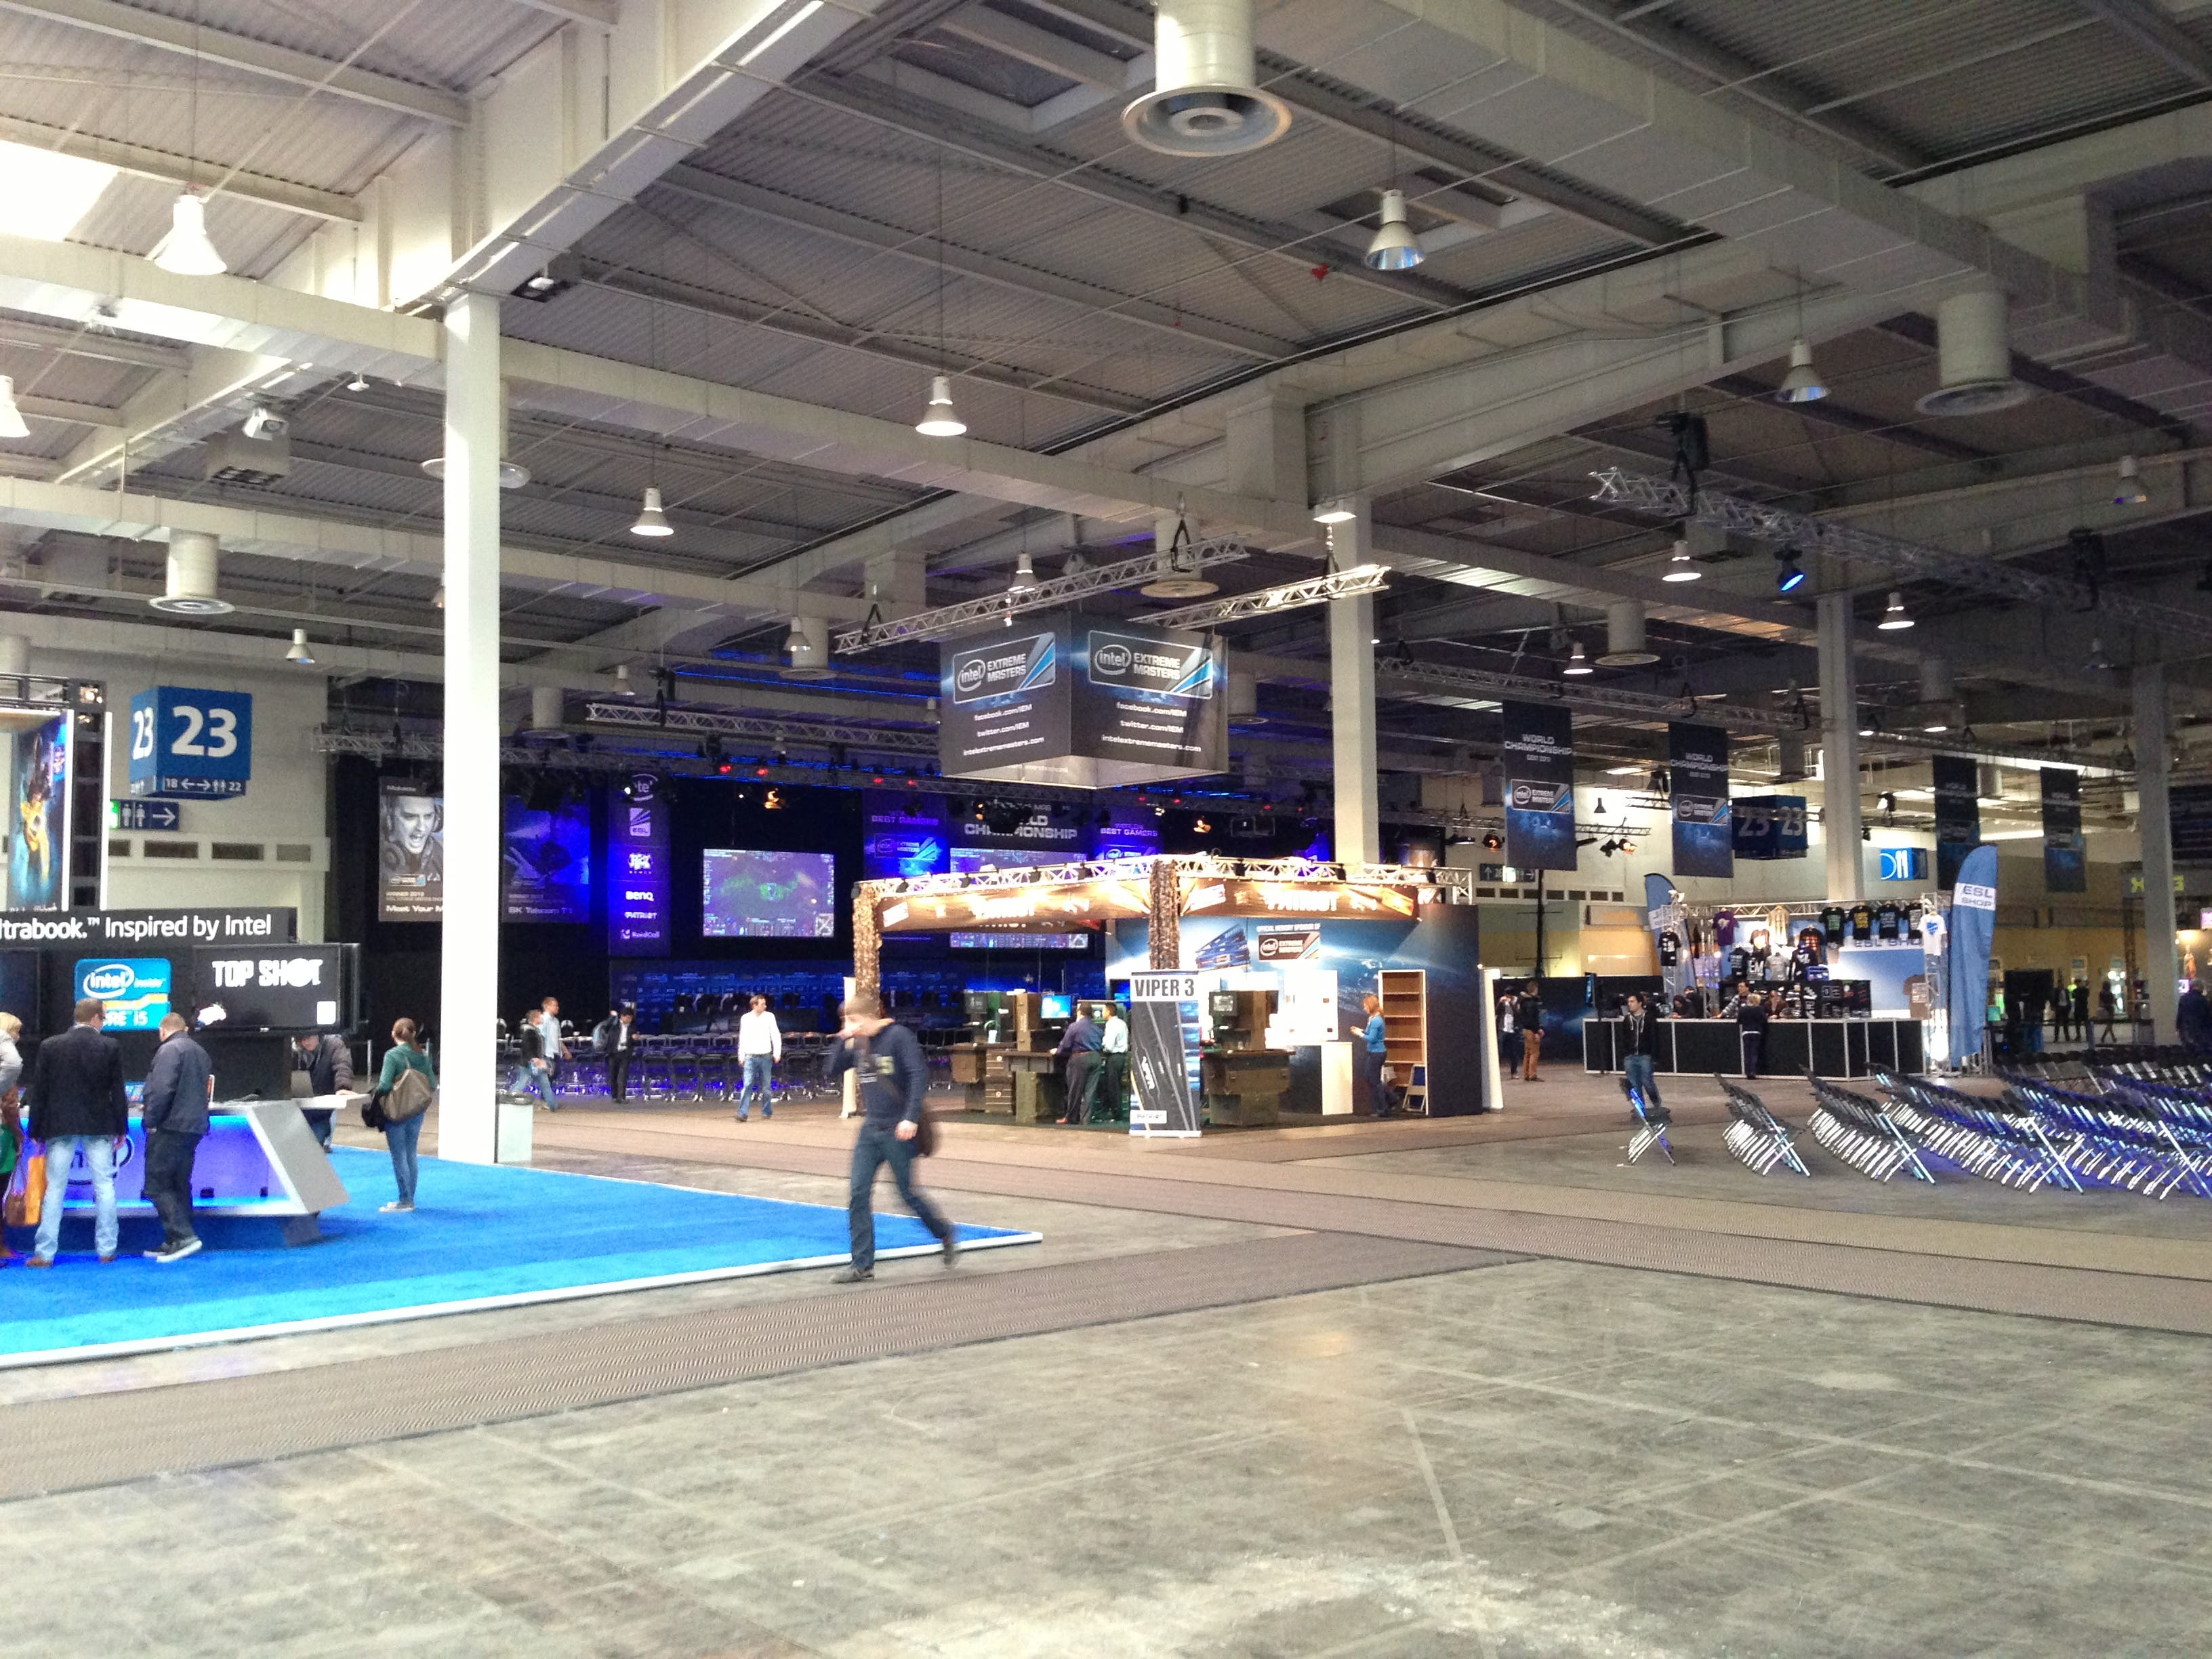 Intel CeBIT 2013 Hall 23